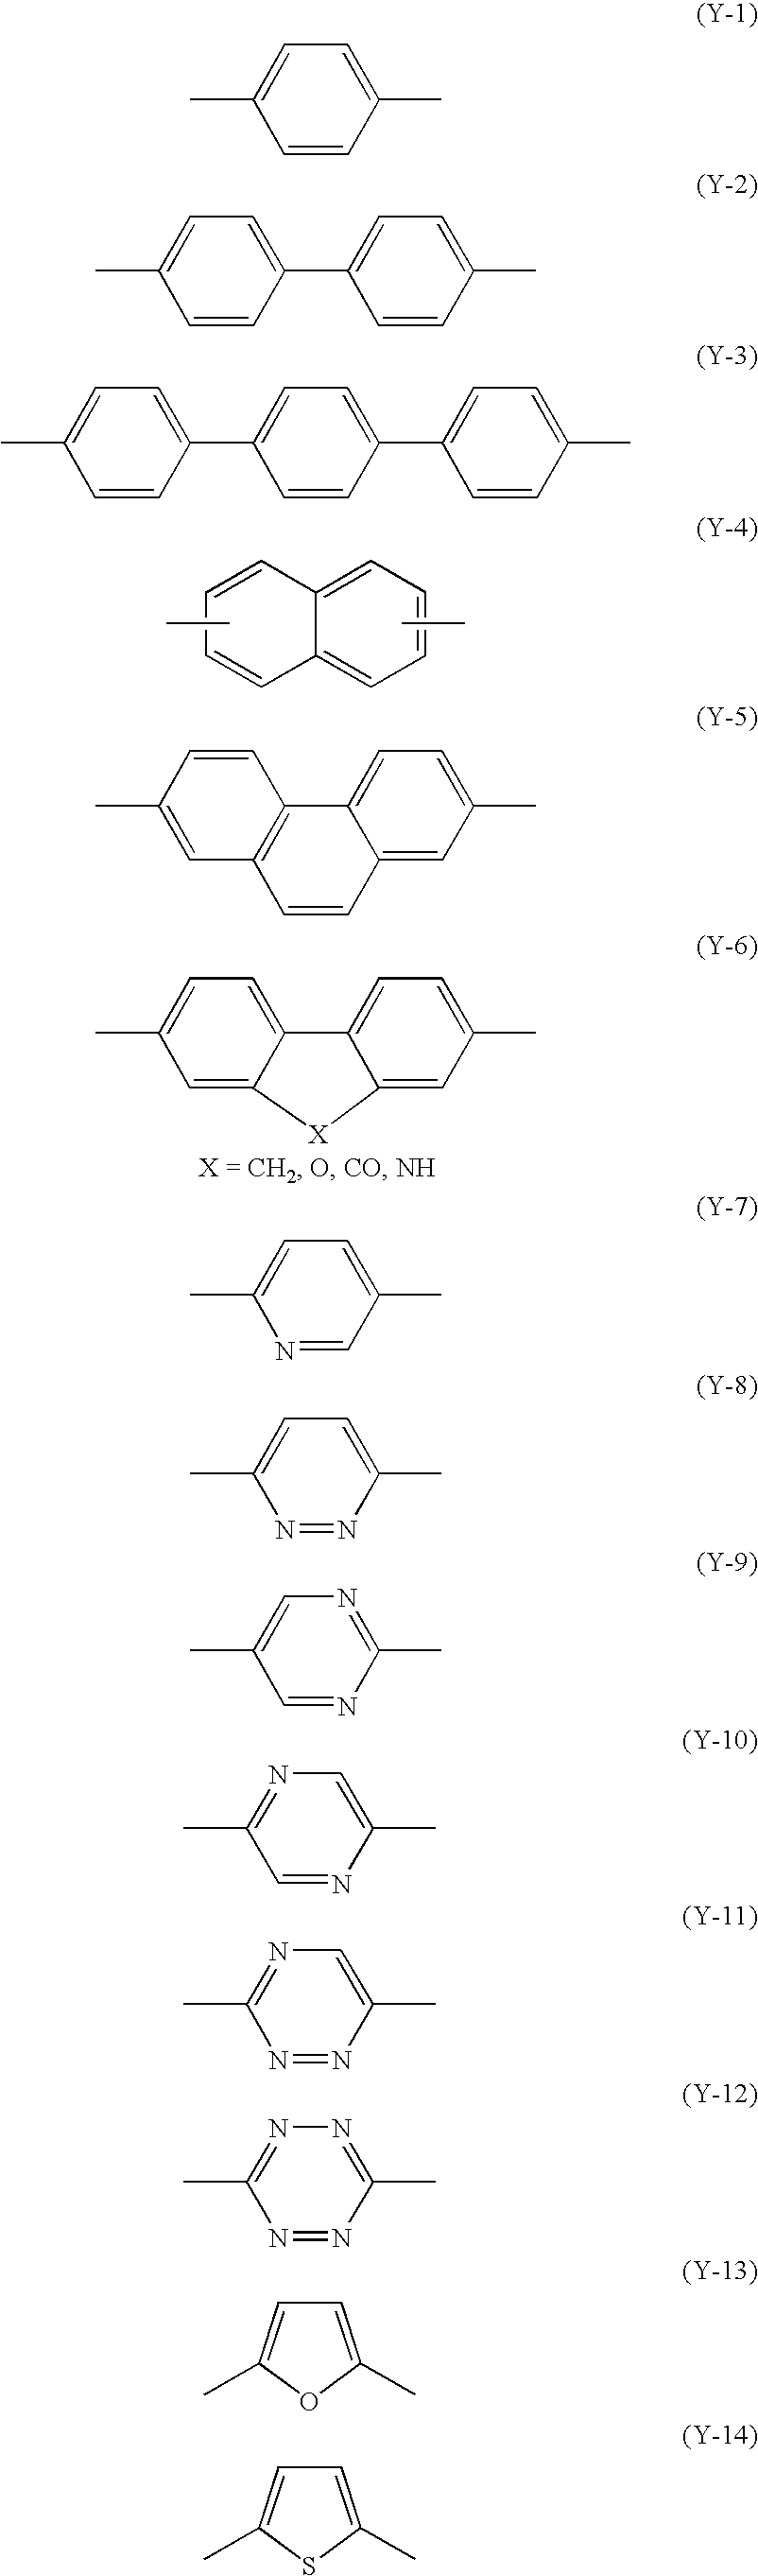 US6727023B2 - Electrolyte composition, electrochemical cell